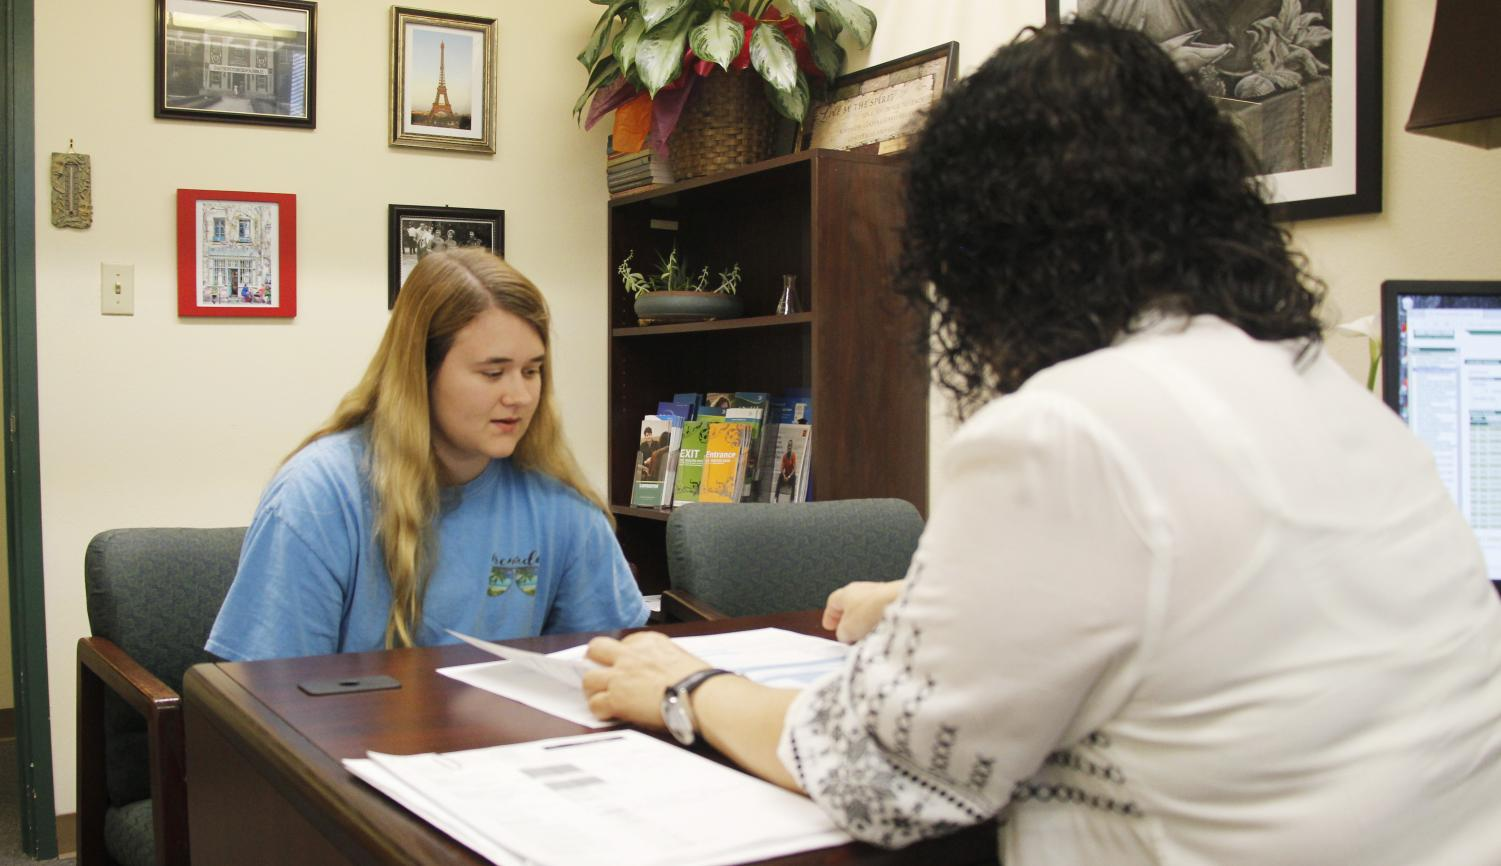 Lindsey Thompson, a sophomore nursing major, speaks with a financial aid counselor about available aid. Students can call or stop by the Office of Financial Aid to learn more about paying for school.